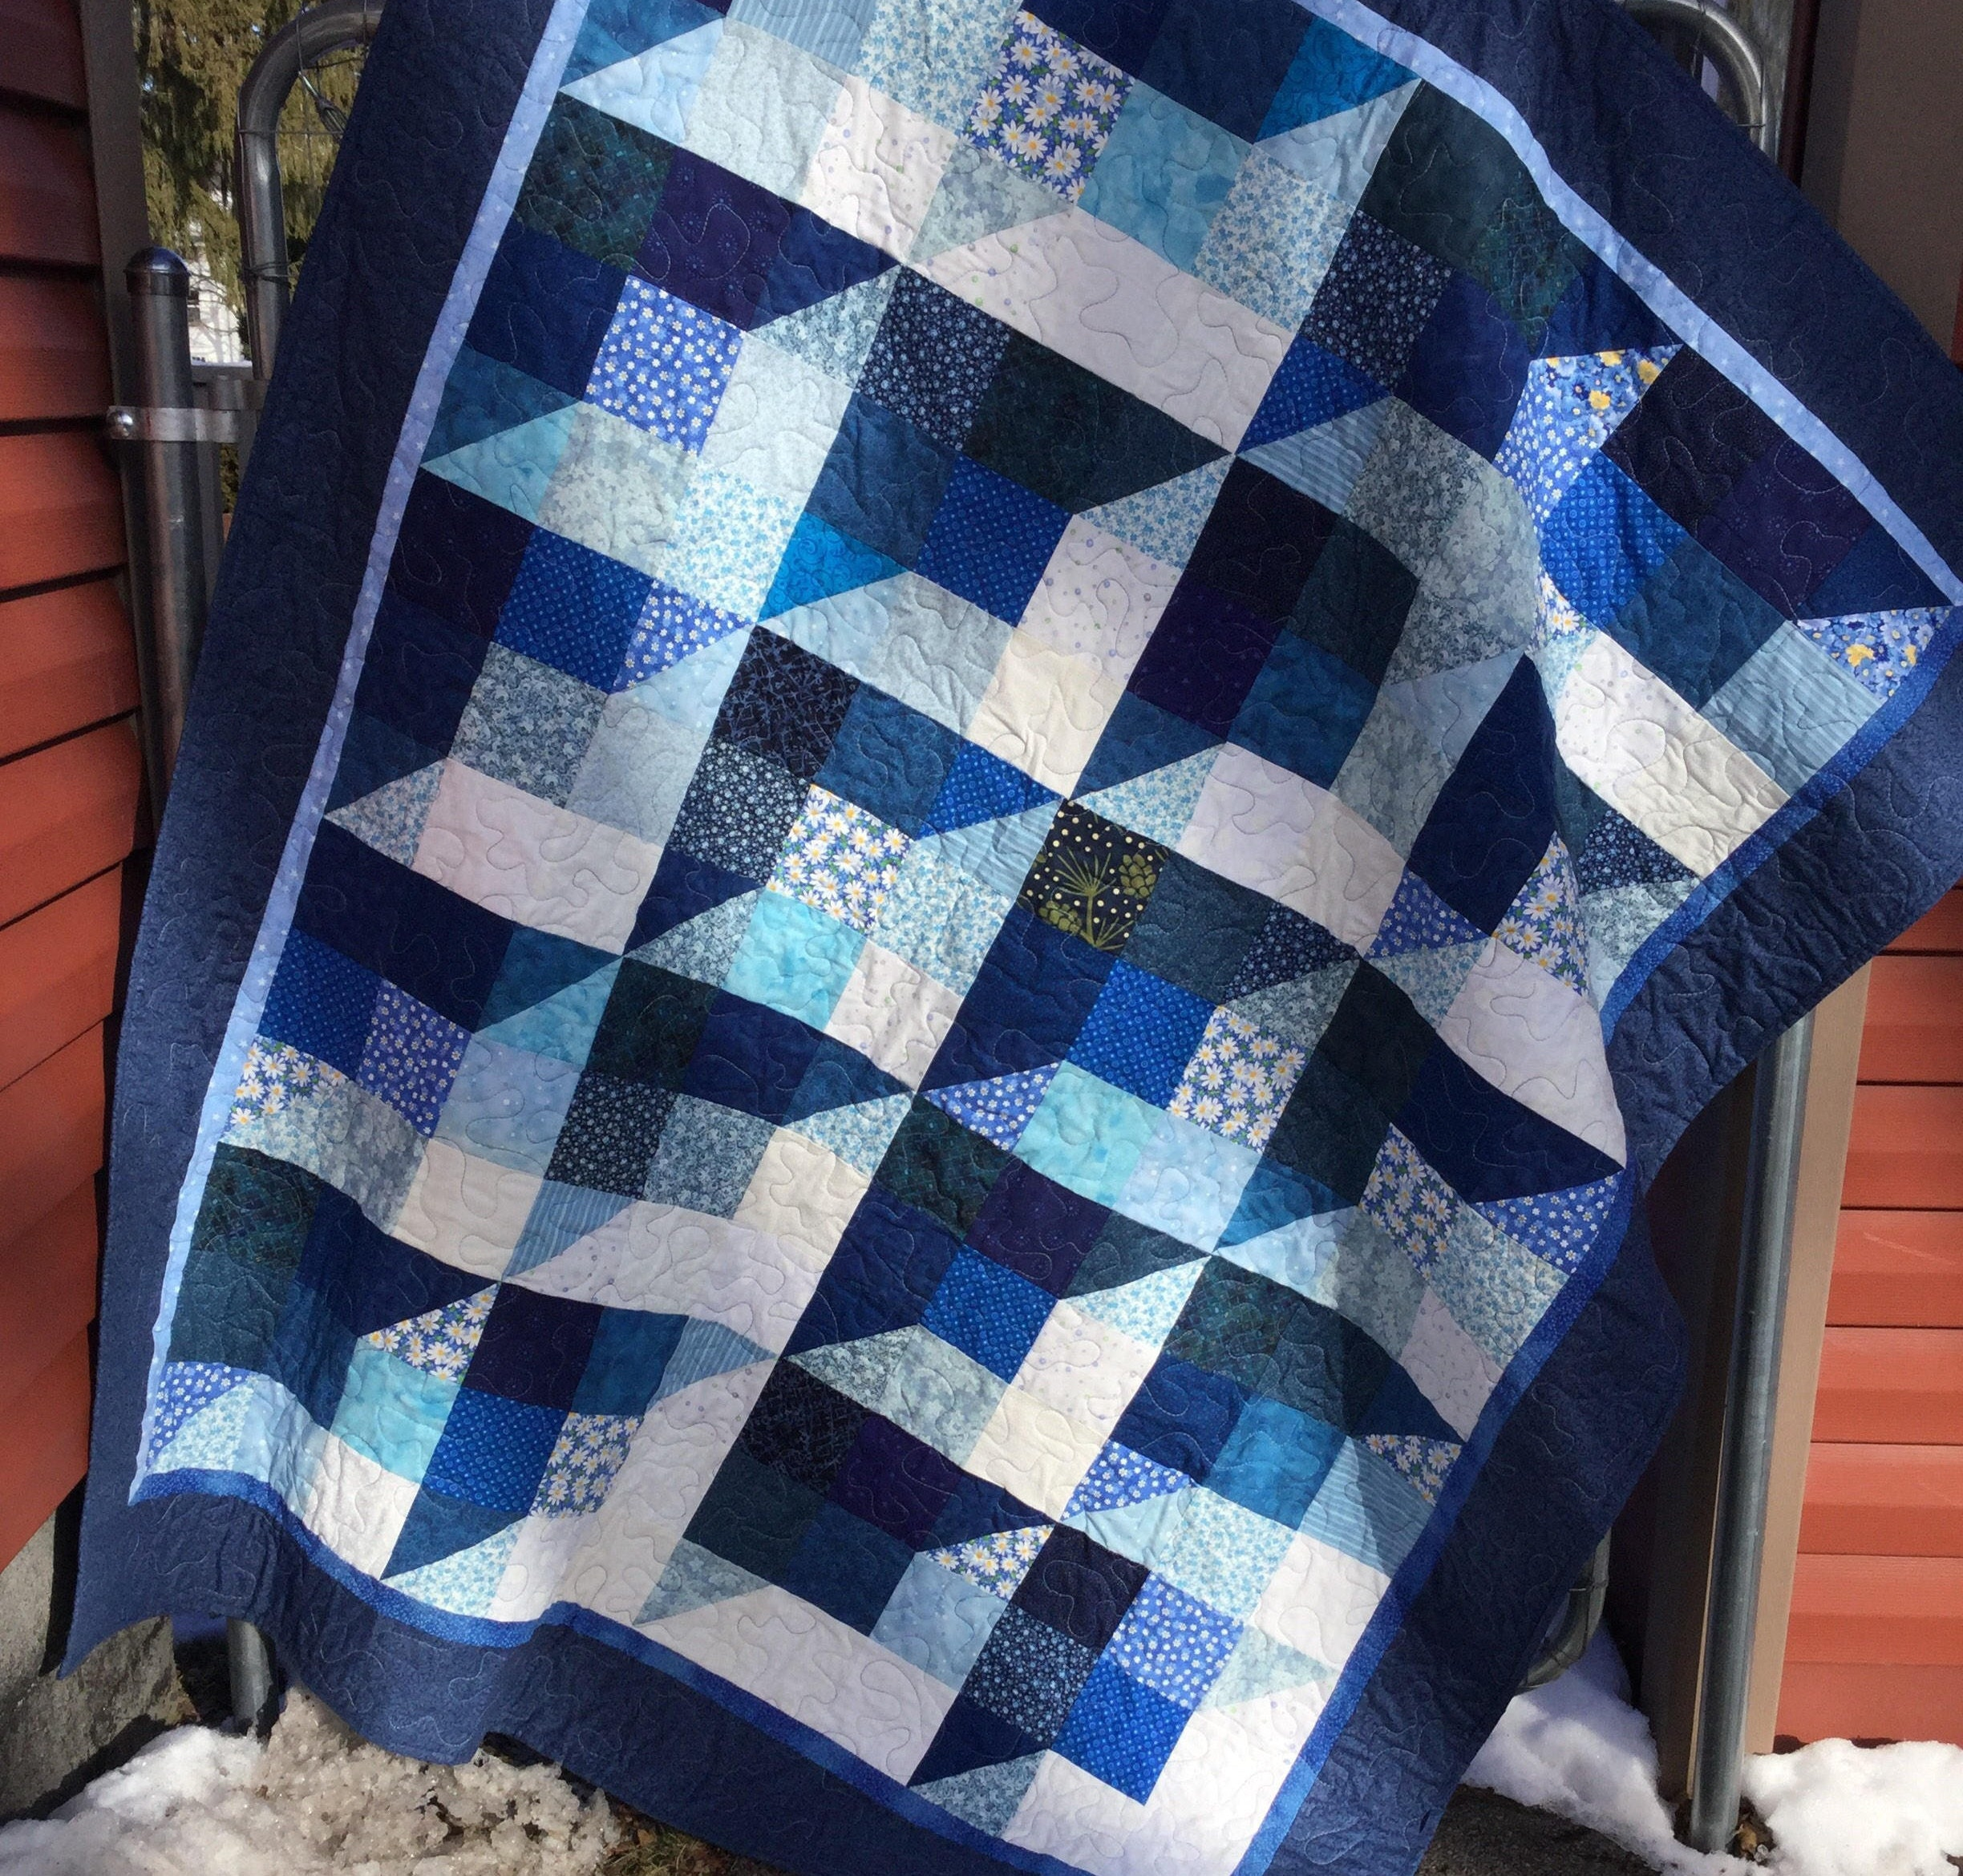 Winter blues scrappy quilt blue patchwork quilt blue lap quilttwin size quilt full size quilt blue white quilted throw handmade quilt